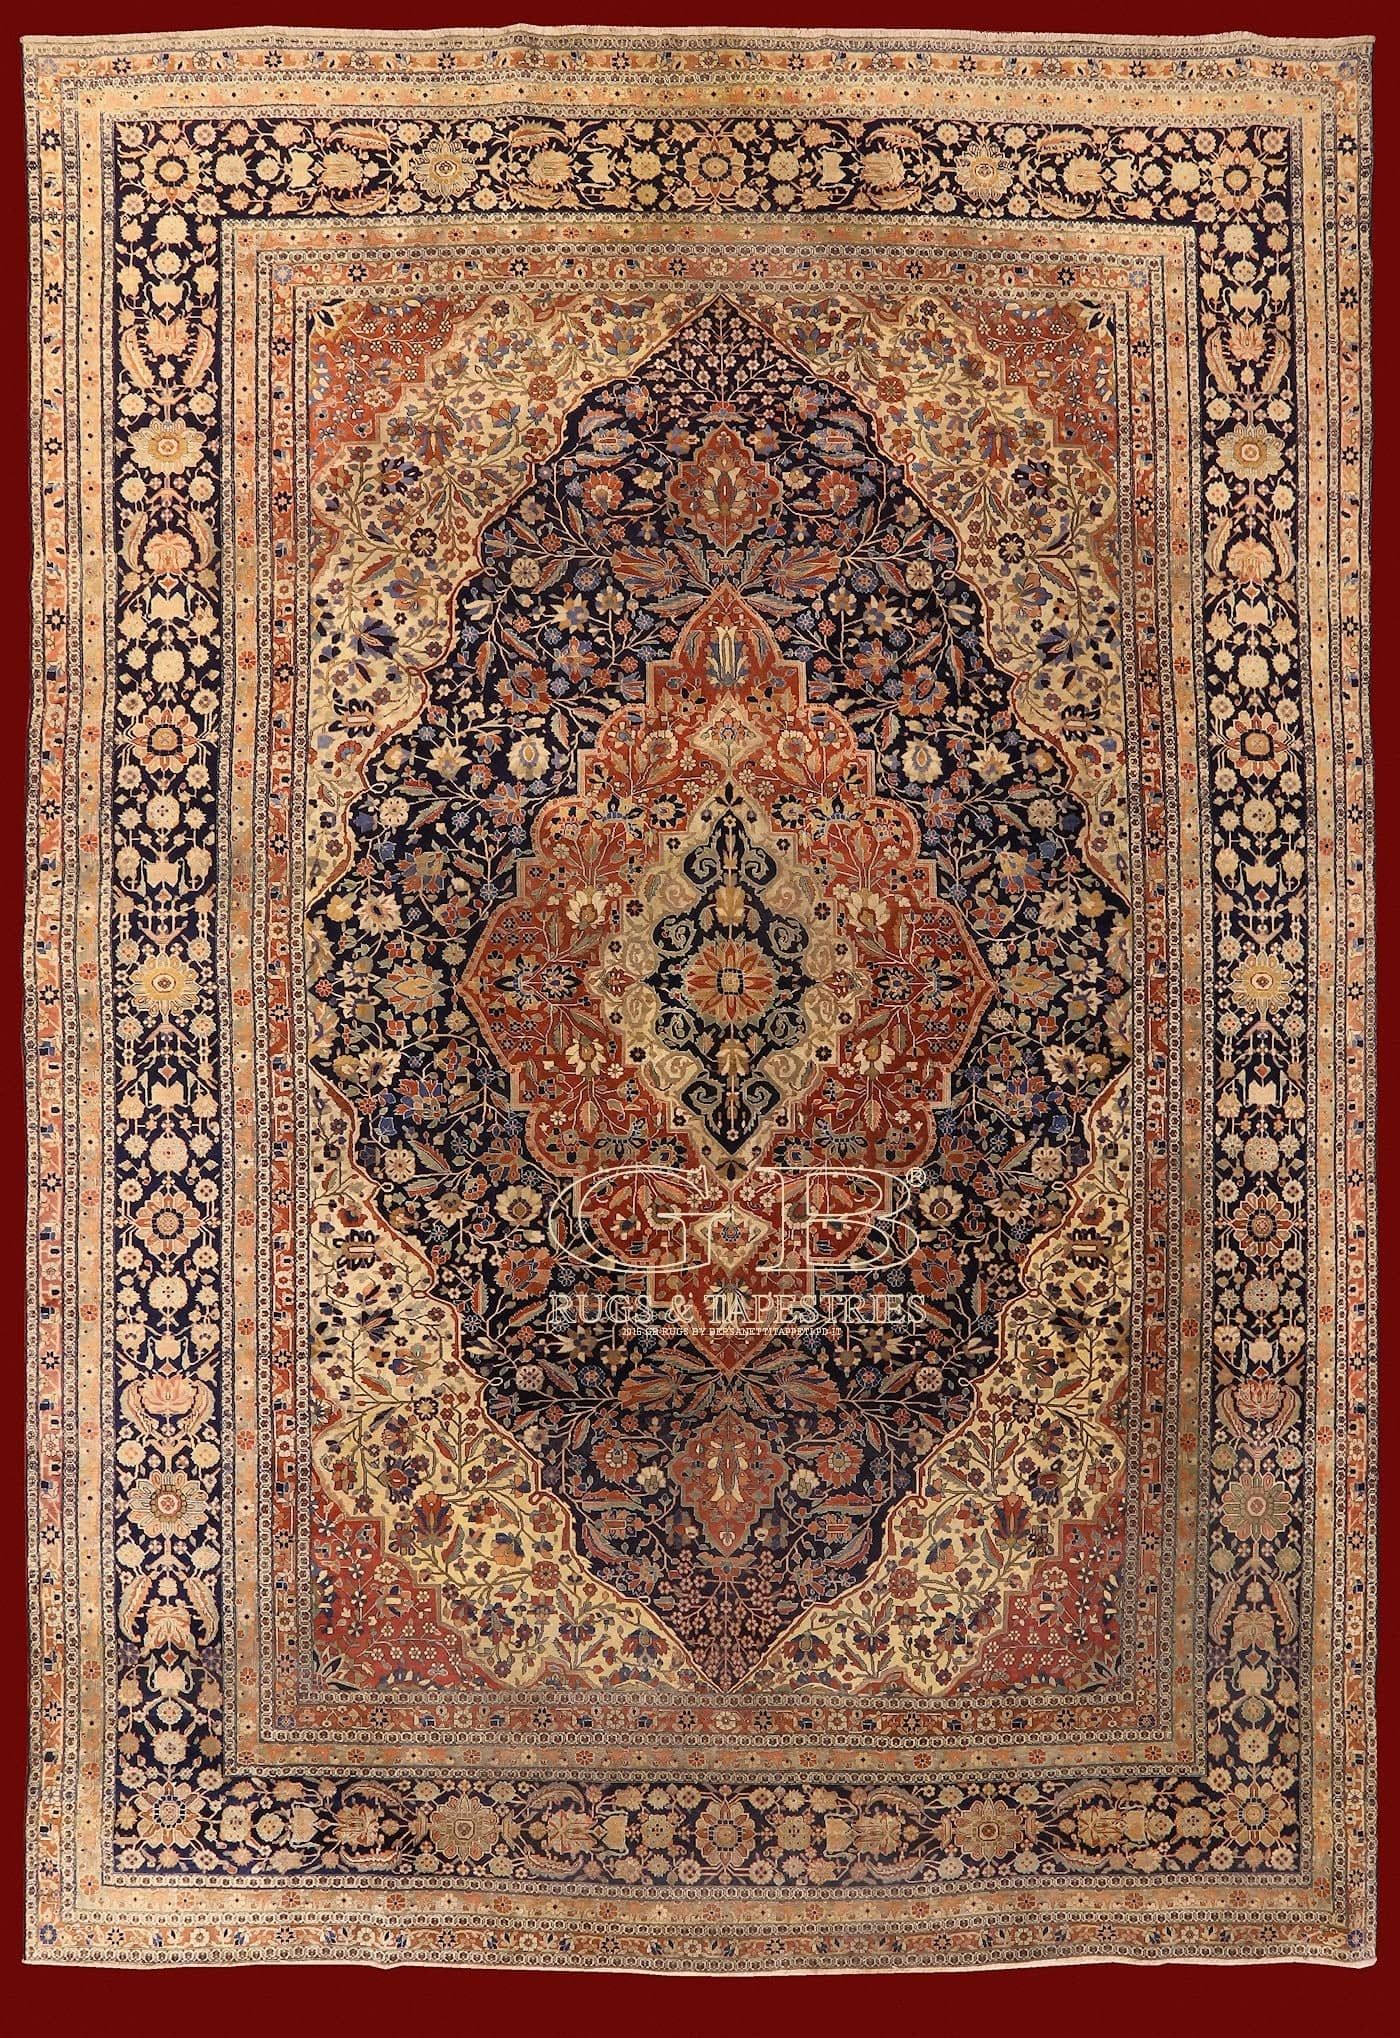 Kashan Mohtasham Rug Iran 400 X 290 Cm 13 12 X 9 51 Ft Cod 141608439706 Persian Rug Designs Antique Carpets Rugs